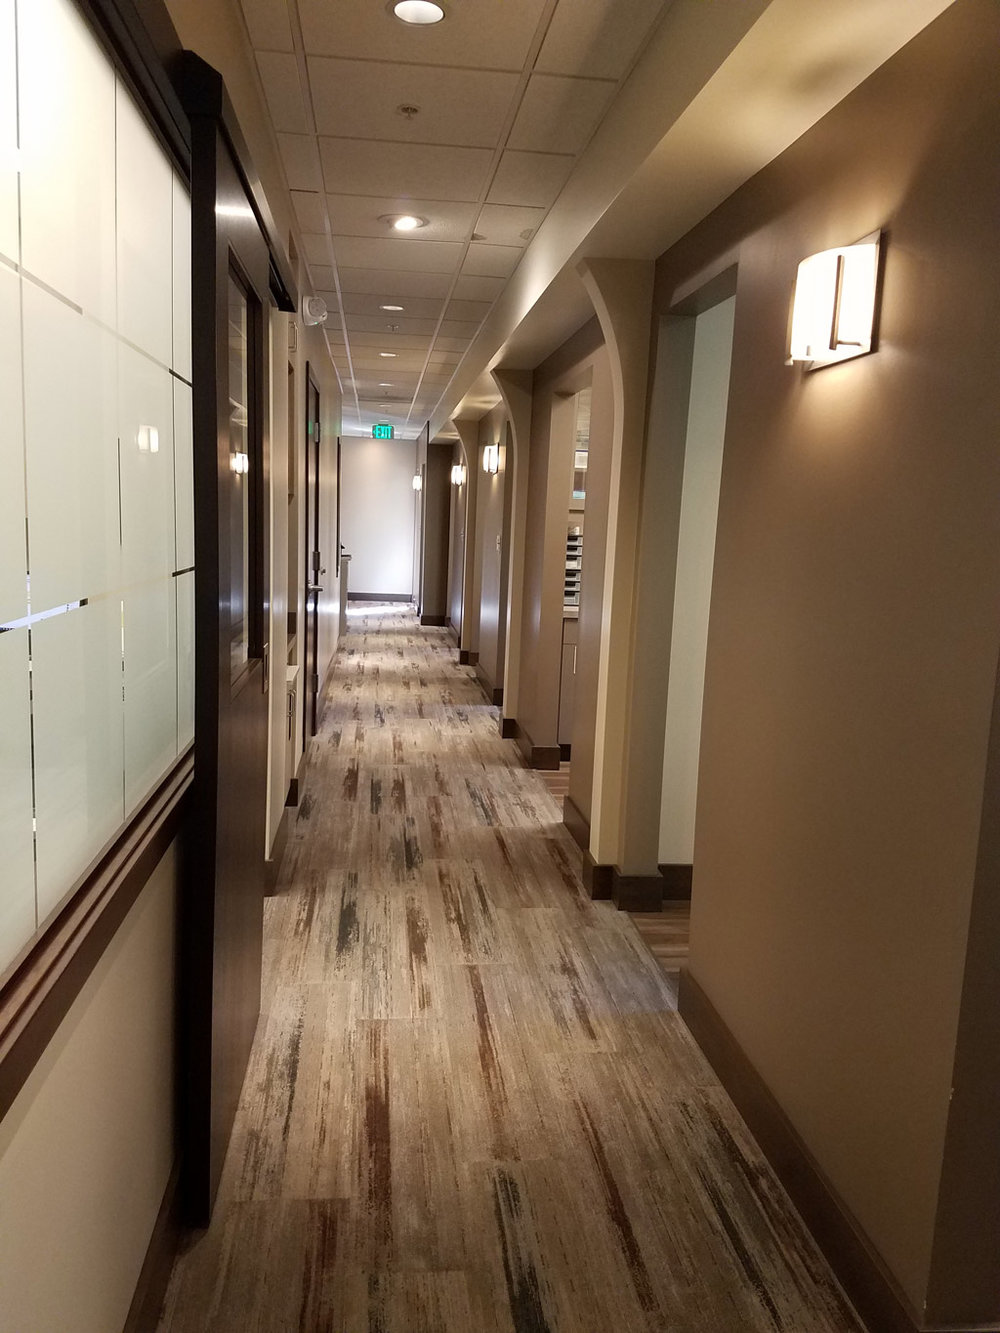 Looking back down the hall towards waiting room at Criscione Family Dental